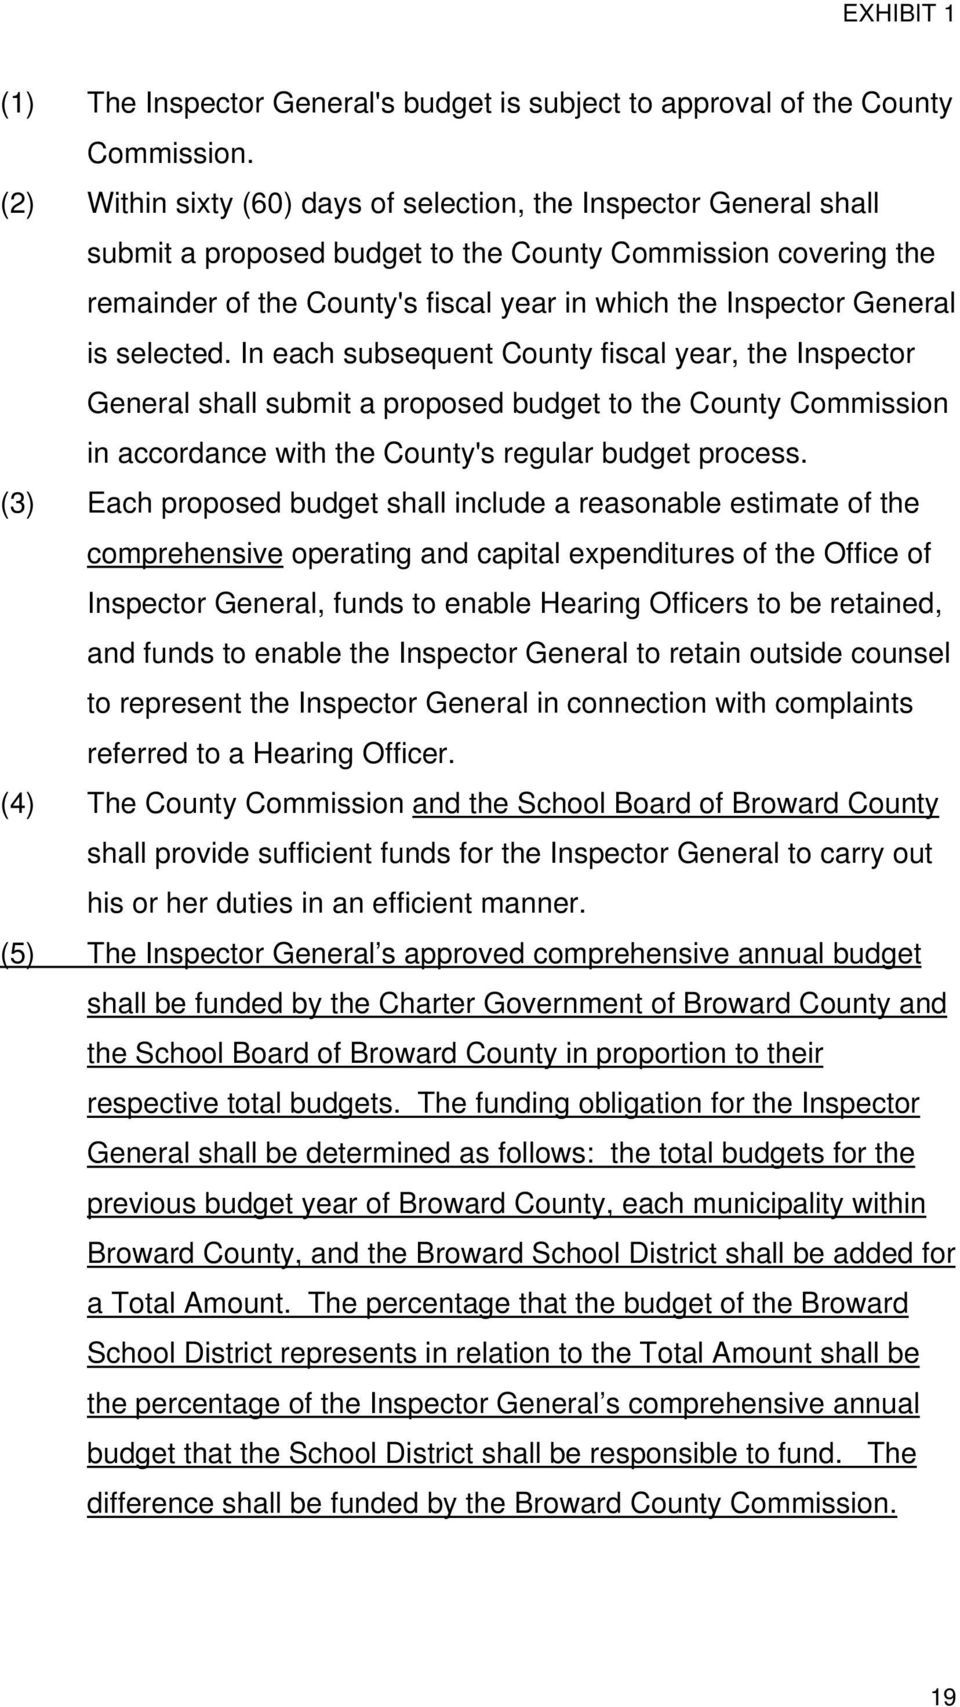 General is selected. In each subsequent County fiscal year, the Inspector General shall submit a proposed budget to the County Commission in accordance with the County's regular budget process.